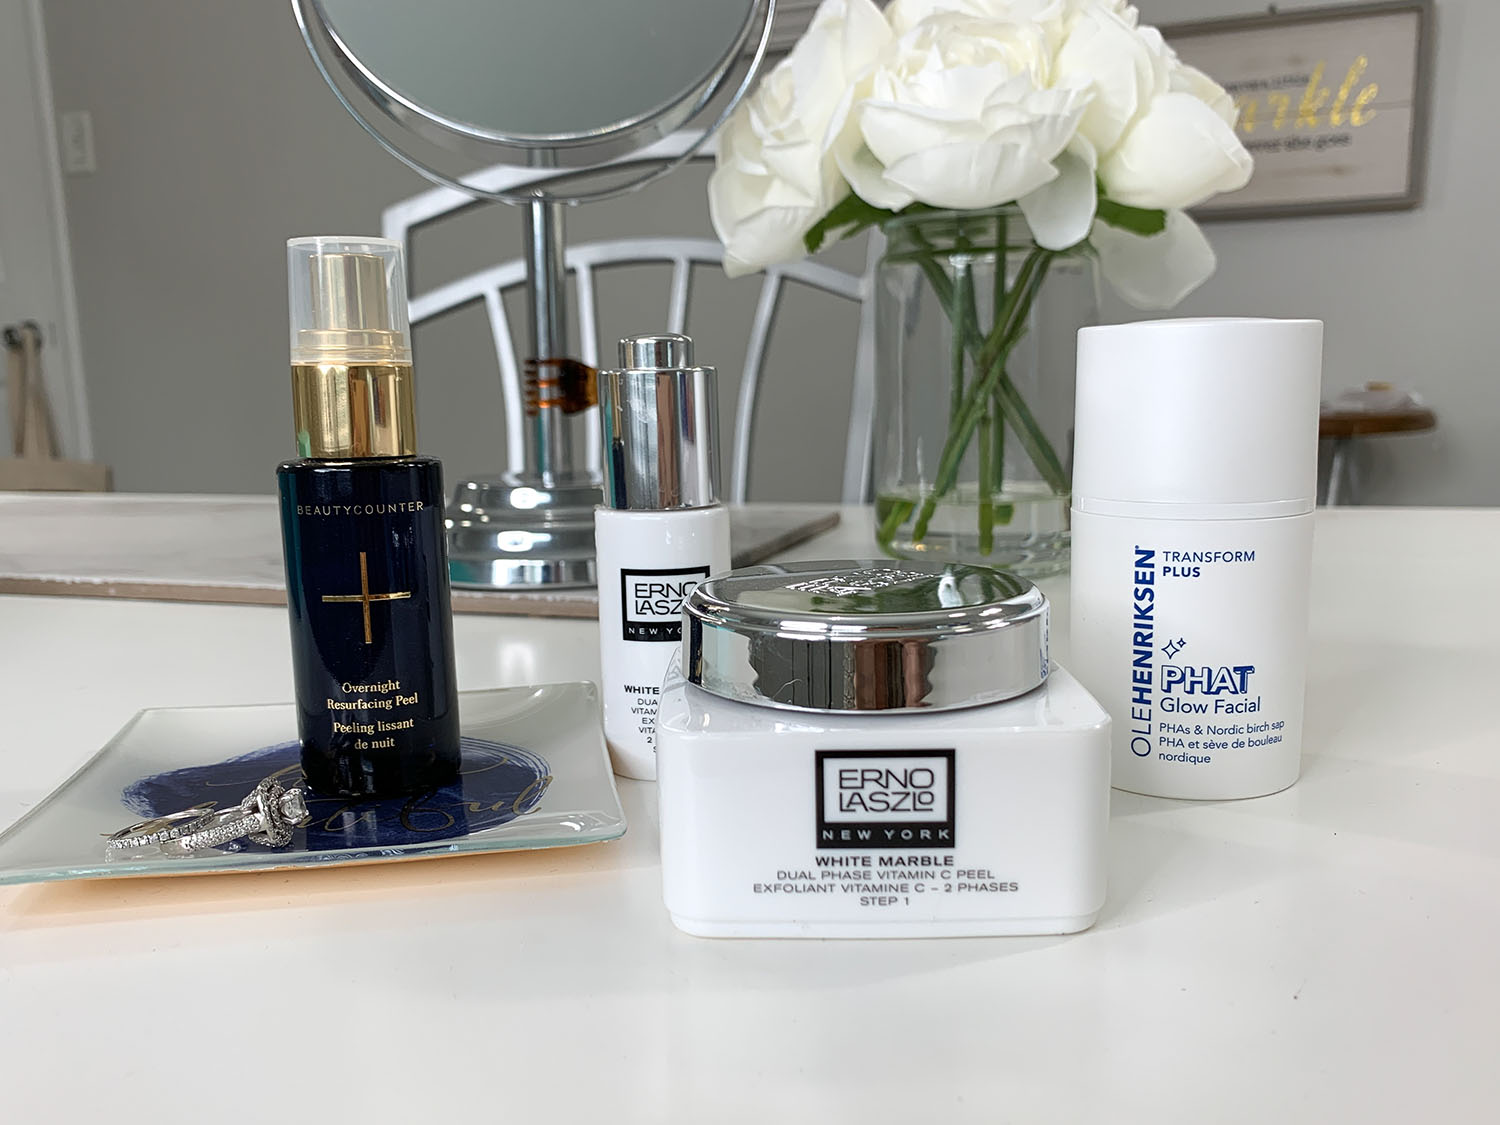 Currently Testing... Skin Care For Dull, Tired Skin | Beautycounter Overnight Resurfacing Peel, Ole Henriksen PHAT Facial, Erno Laszlo White Marble Dual Phase